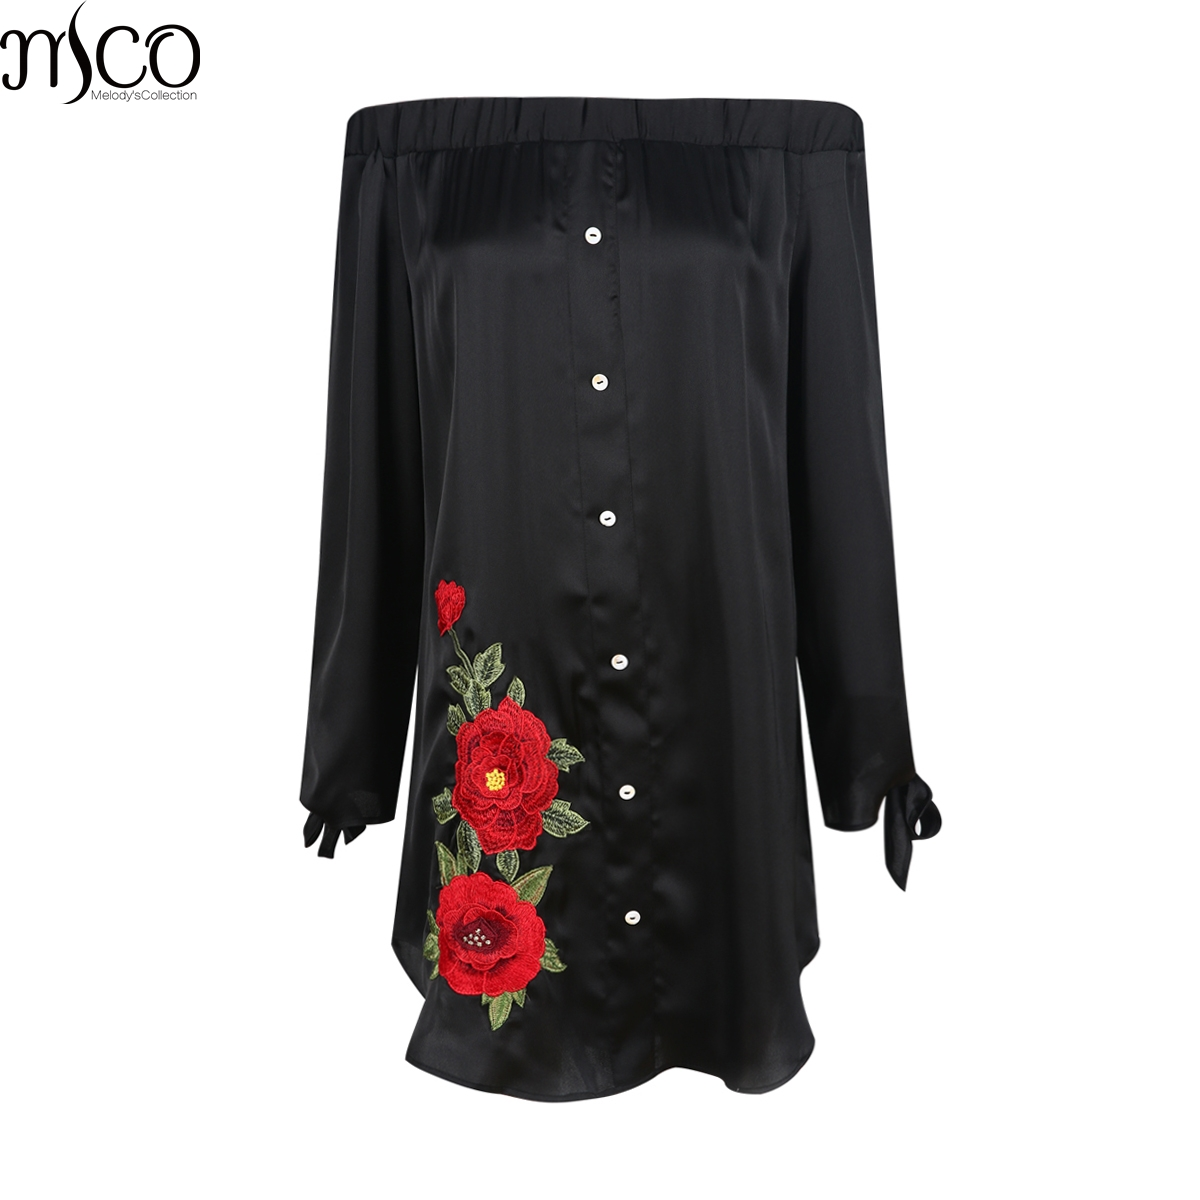 MCO <font><b>Sexy</b></font> Off Shoulder Floral Emboridery Plus <font><b>Size</b></font> Shirt <font><b>Dress</b></font> Oversized Mini <font><b>Dresses</b></font> Black Bardot <font><b>Big</b></font> Women Clothing 5xl 6xl 7xl image